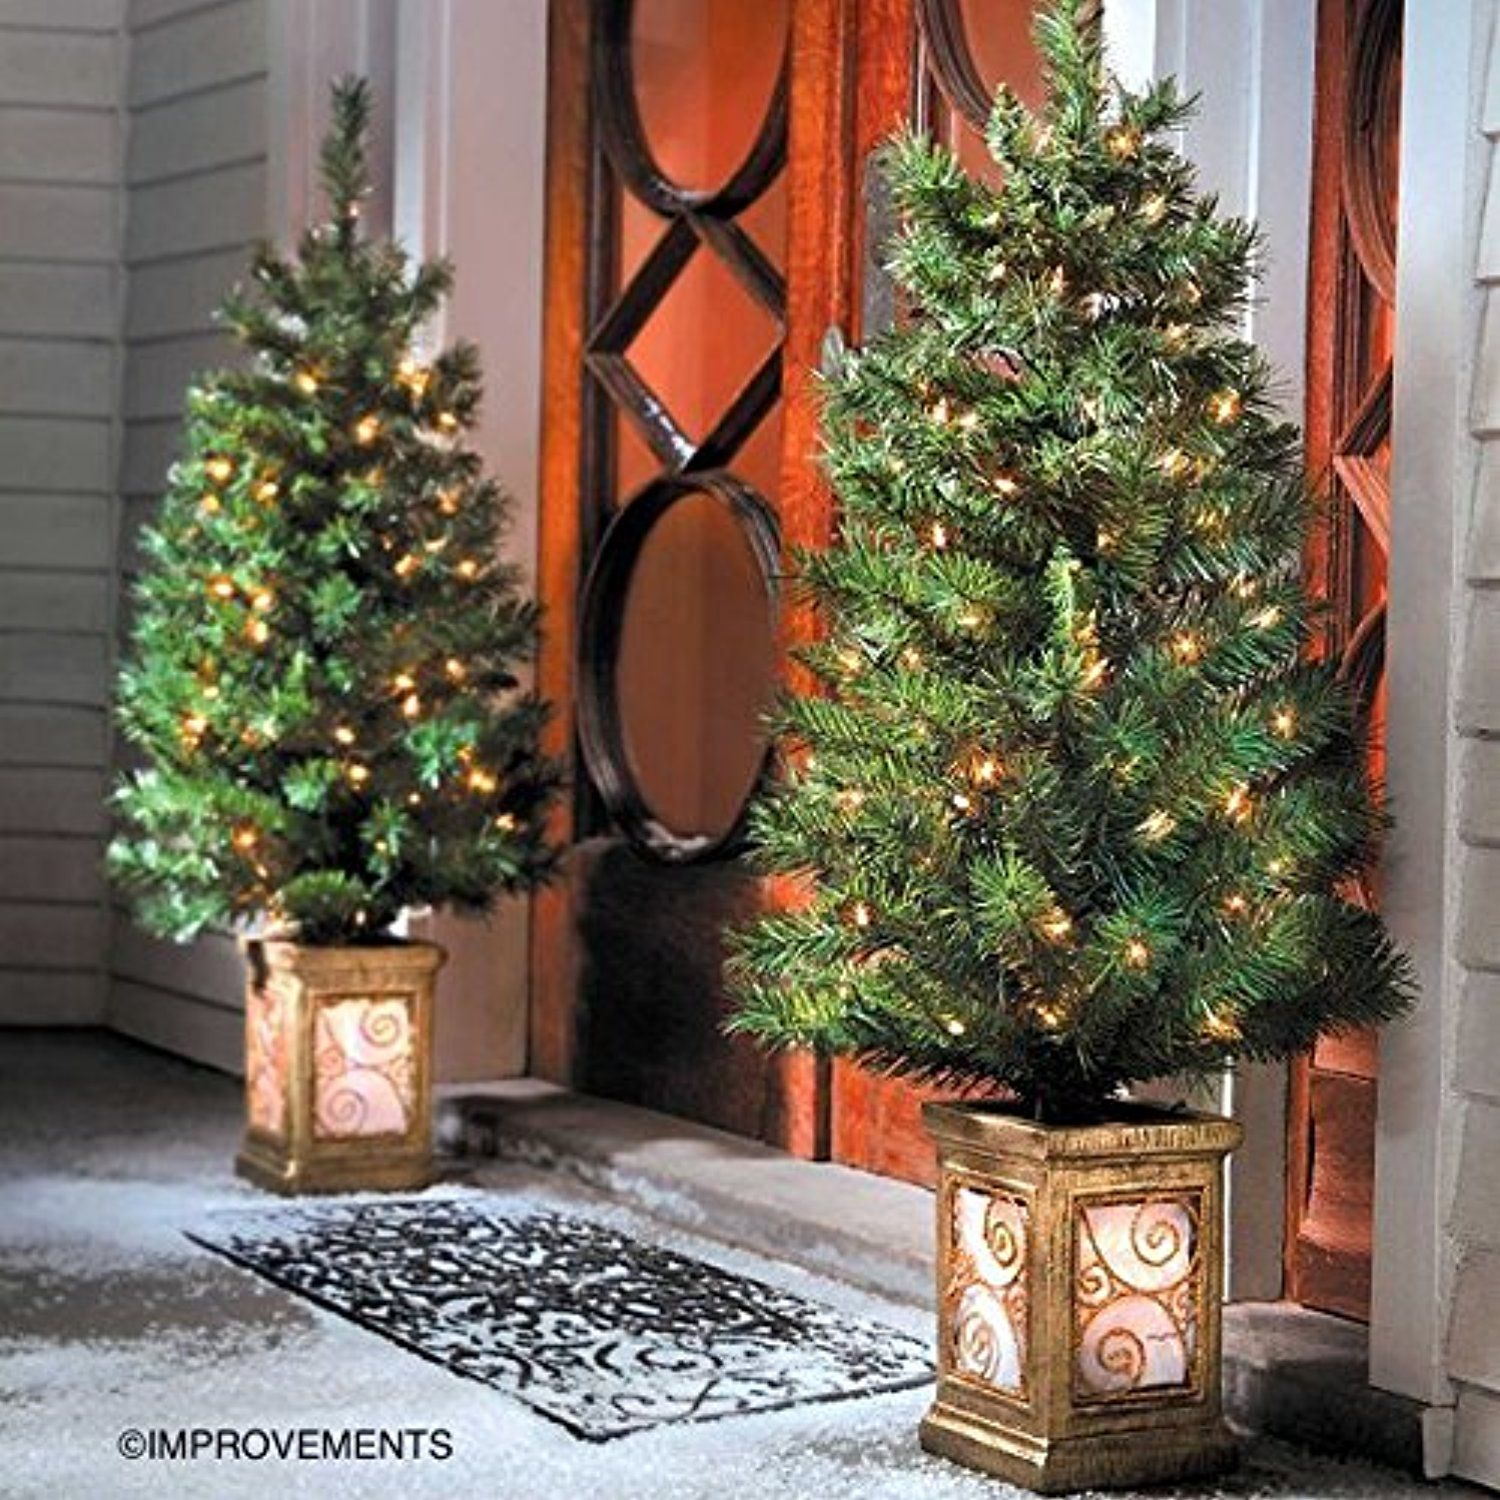 4 Ft Pre Lit Entryway Christmas Trees Set Of 2 By Improvements Details Can Be Fou Outdoor Holiday Decor Pre Lit Christmas Tree Christmas Greenery Decor